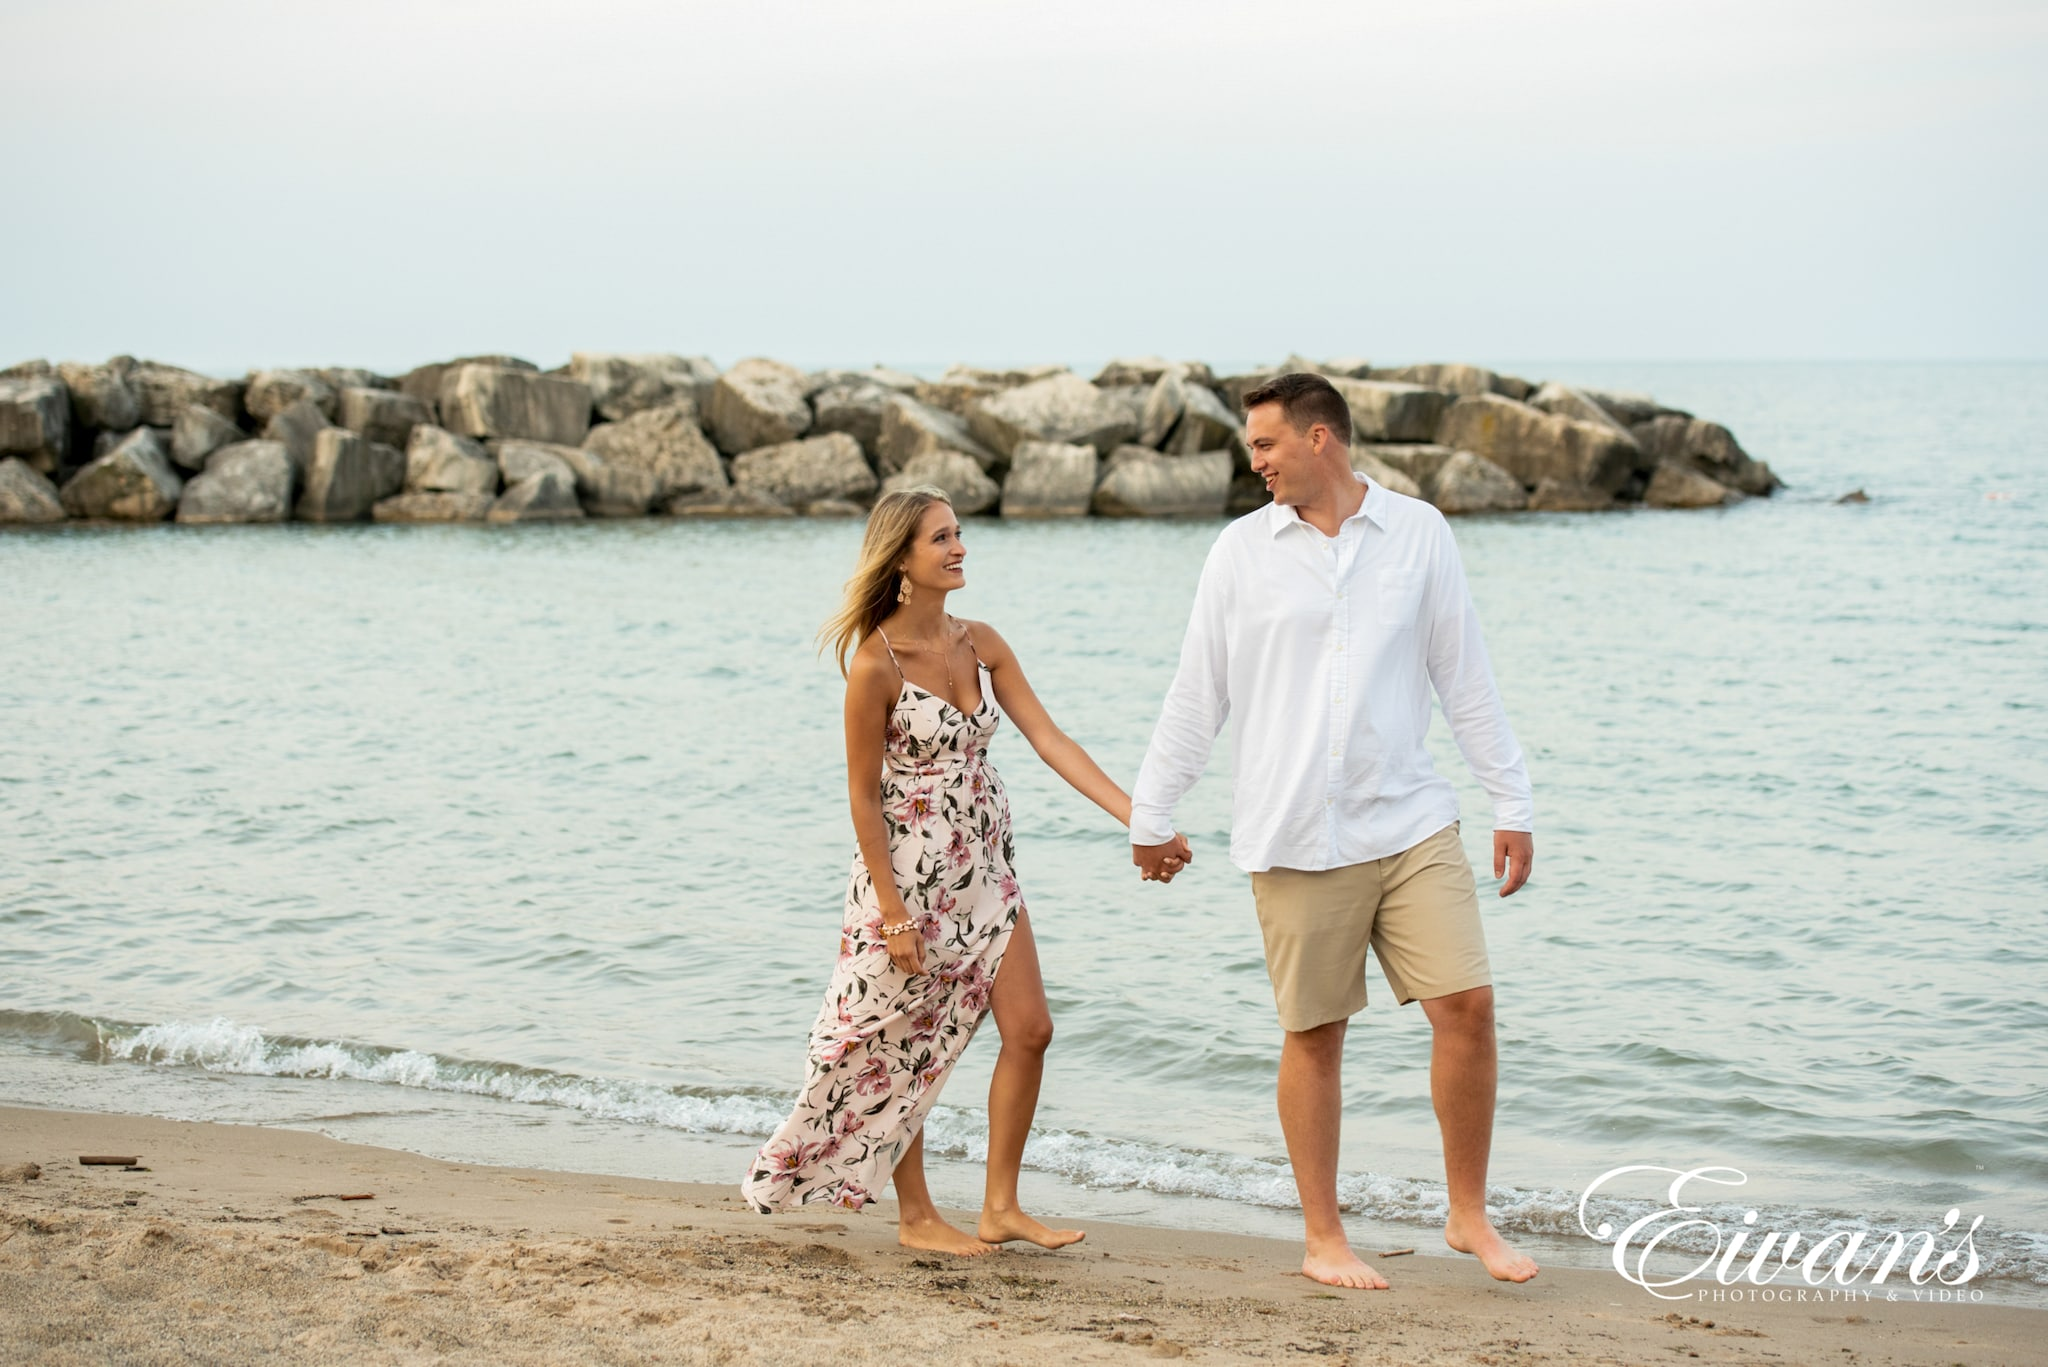 image of engaged couple walking on the beach